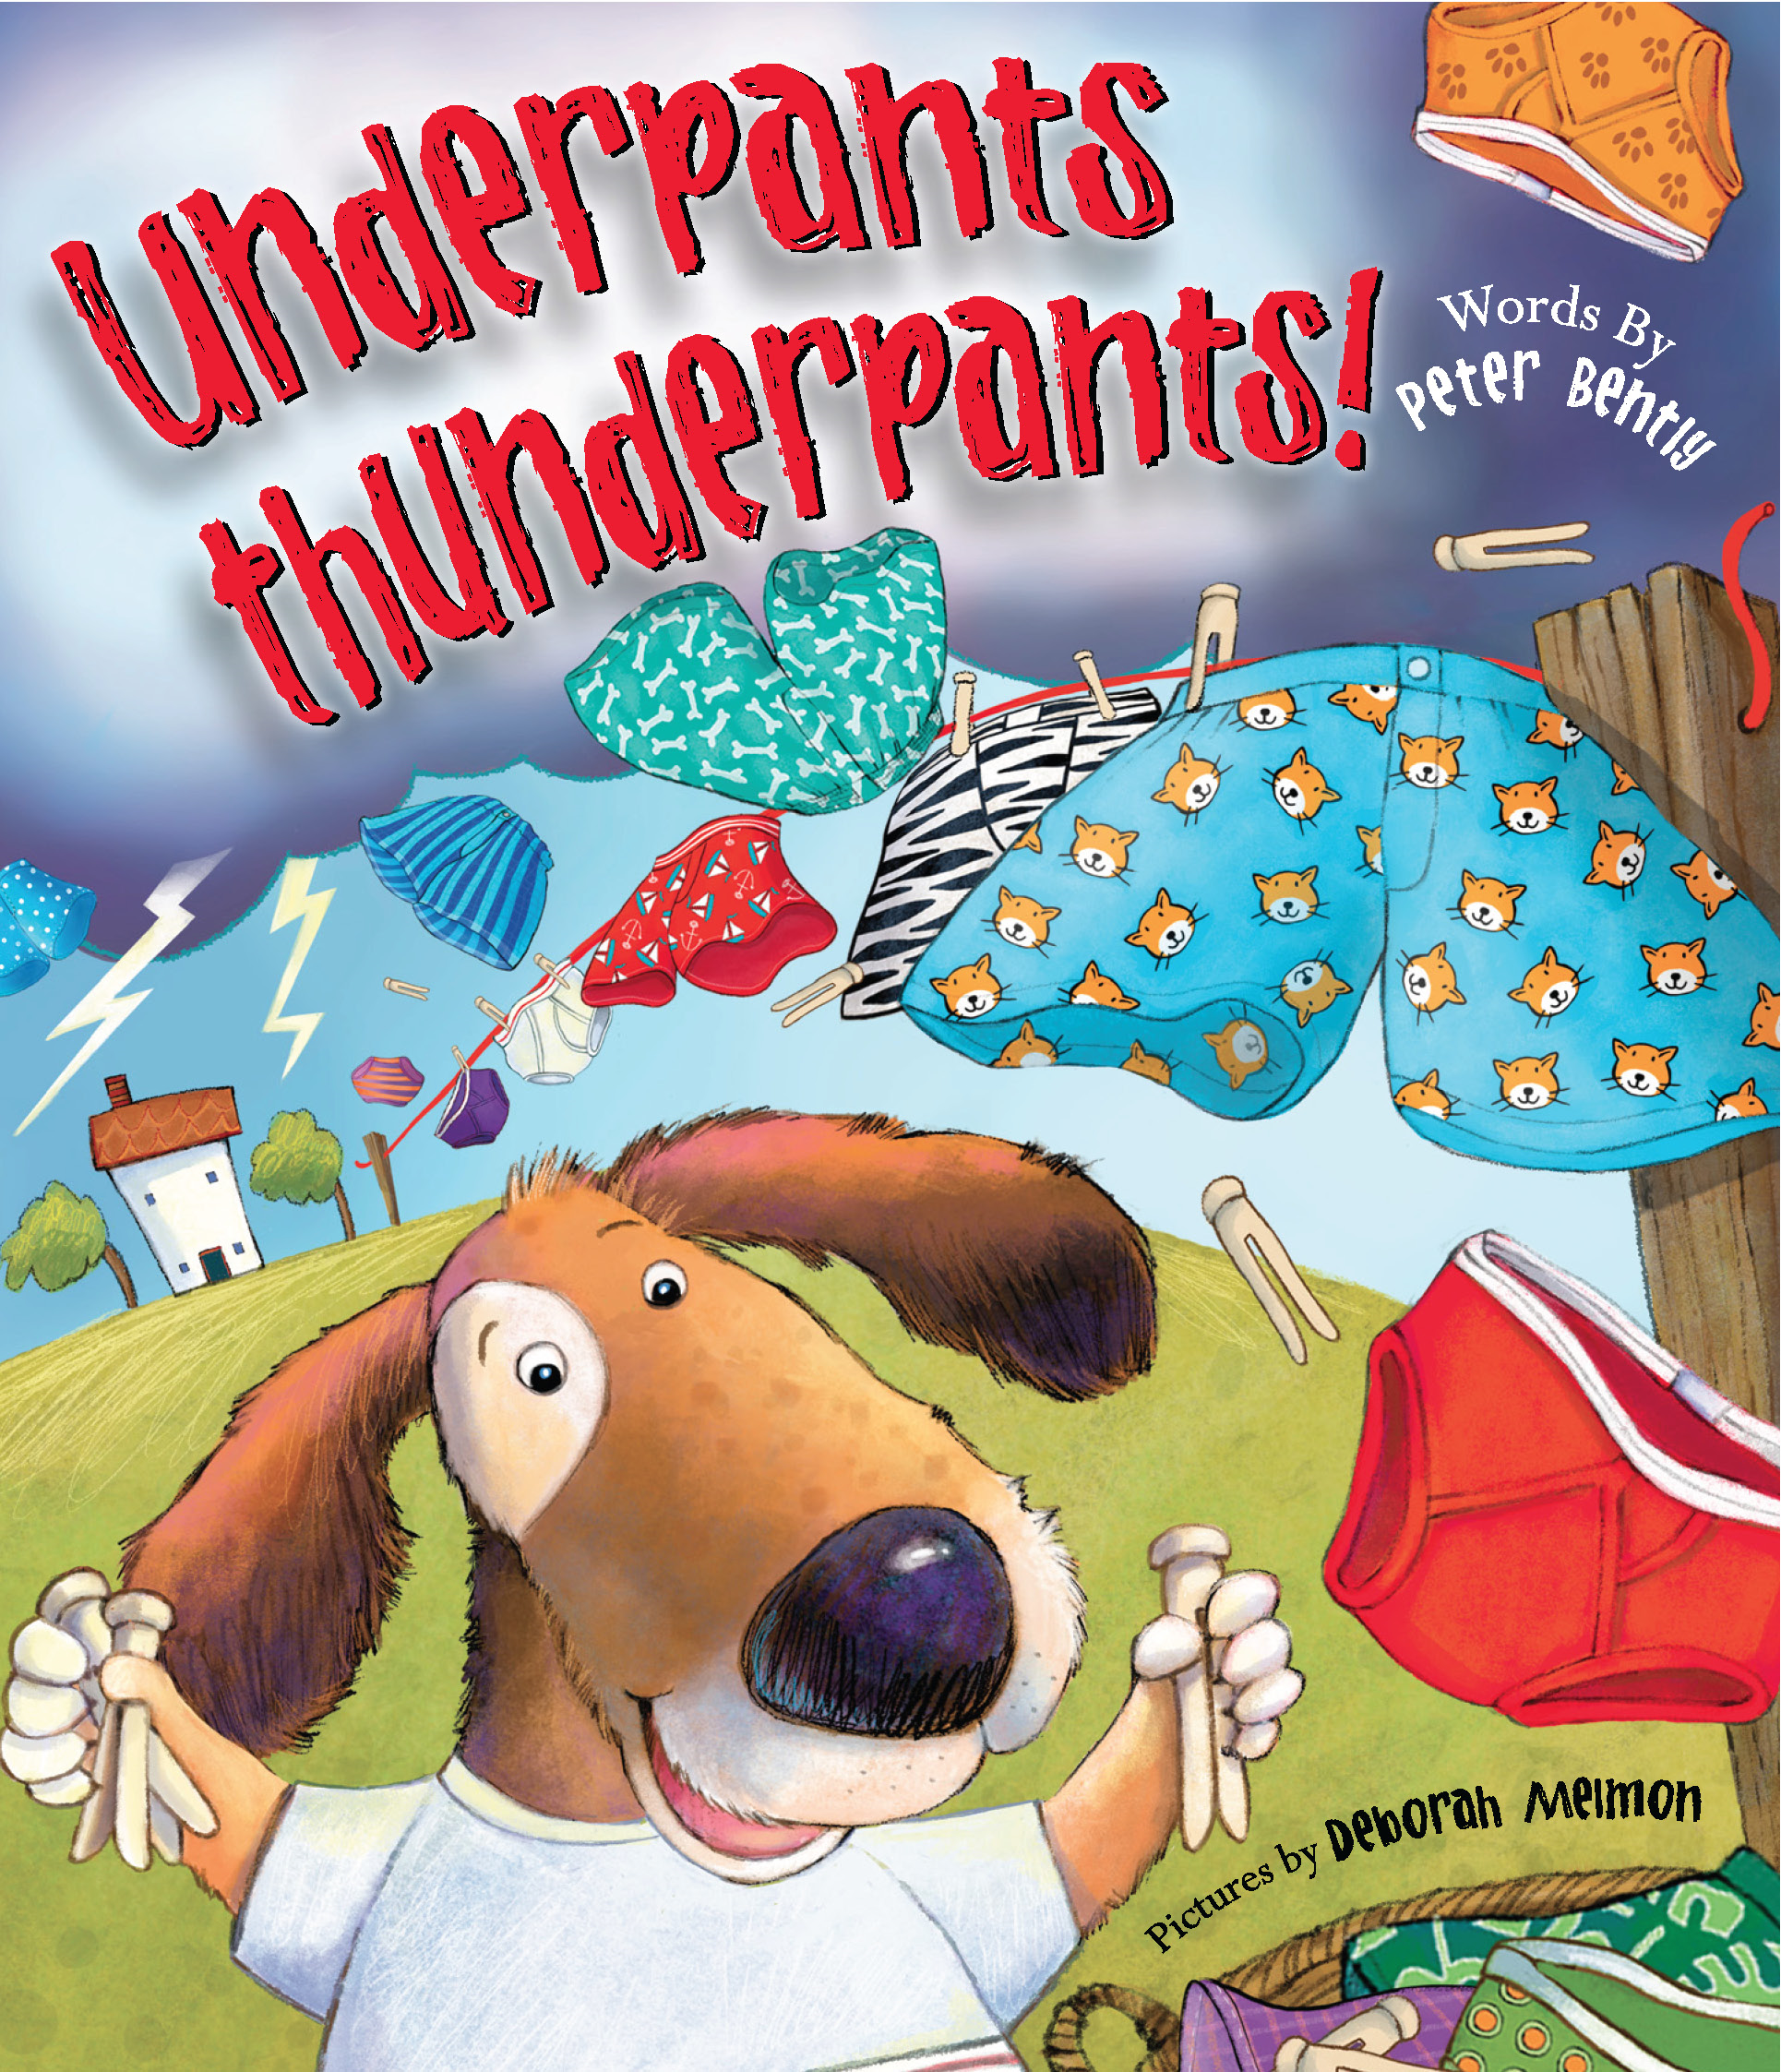 Underpants Thunderpants (Parragon Read-Along)